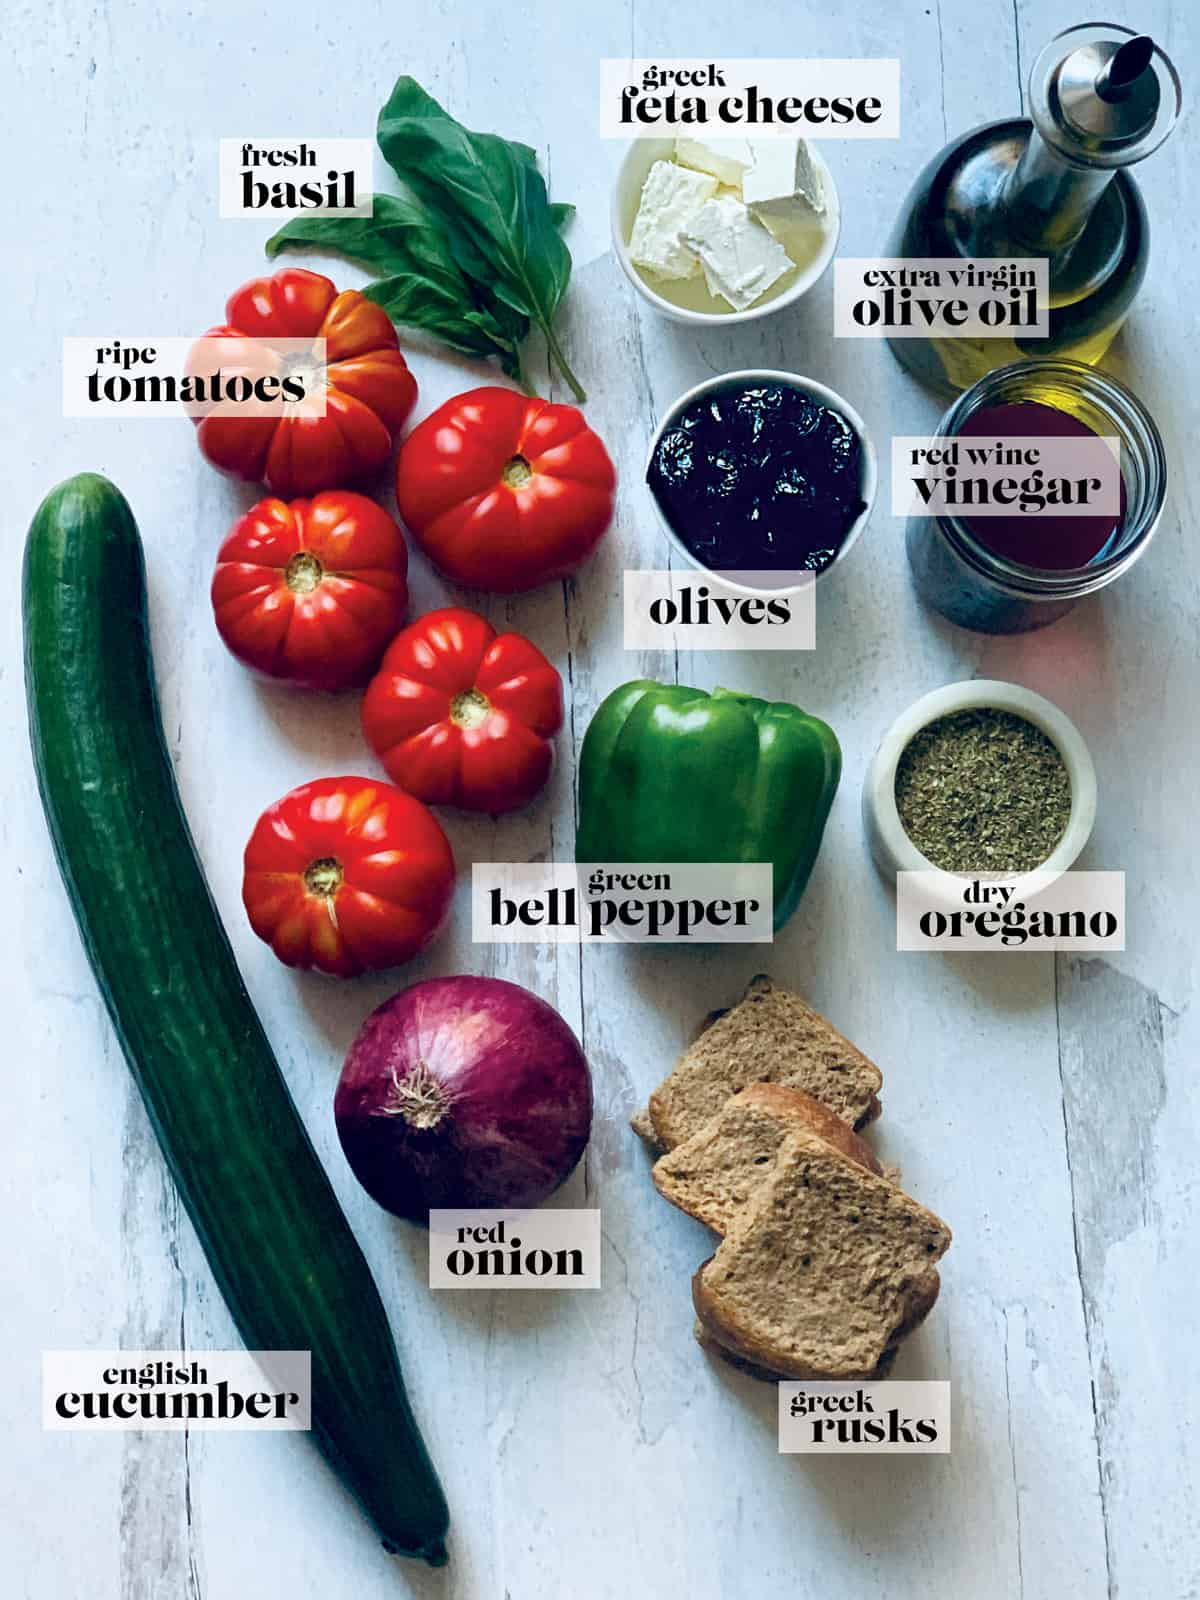 Tomatoes, a cucumber, a green bell pepper, an onion, fresh basil, containers with feta cheese, olives, oregano, and vinegar and a bottle of olive oil and some rusks on a table.